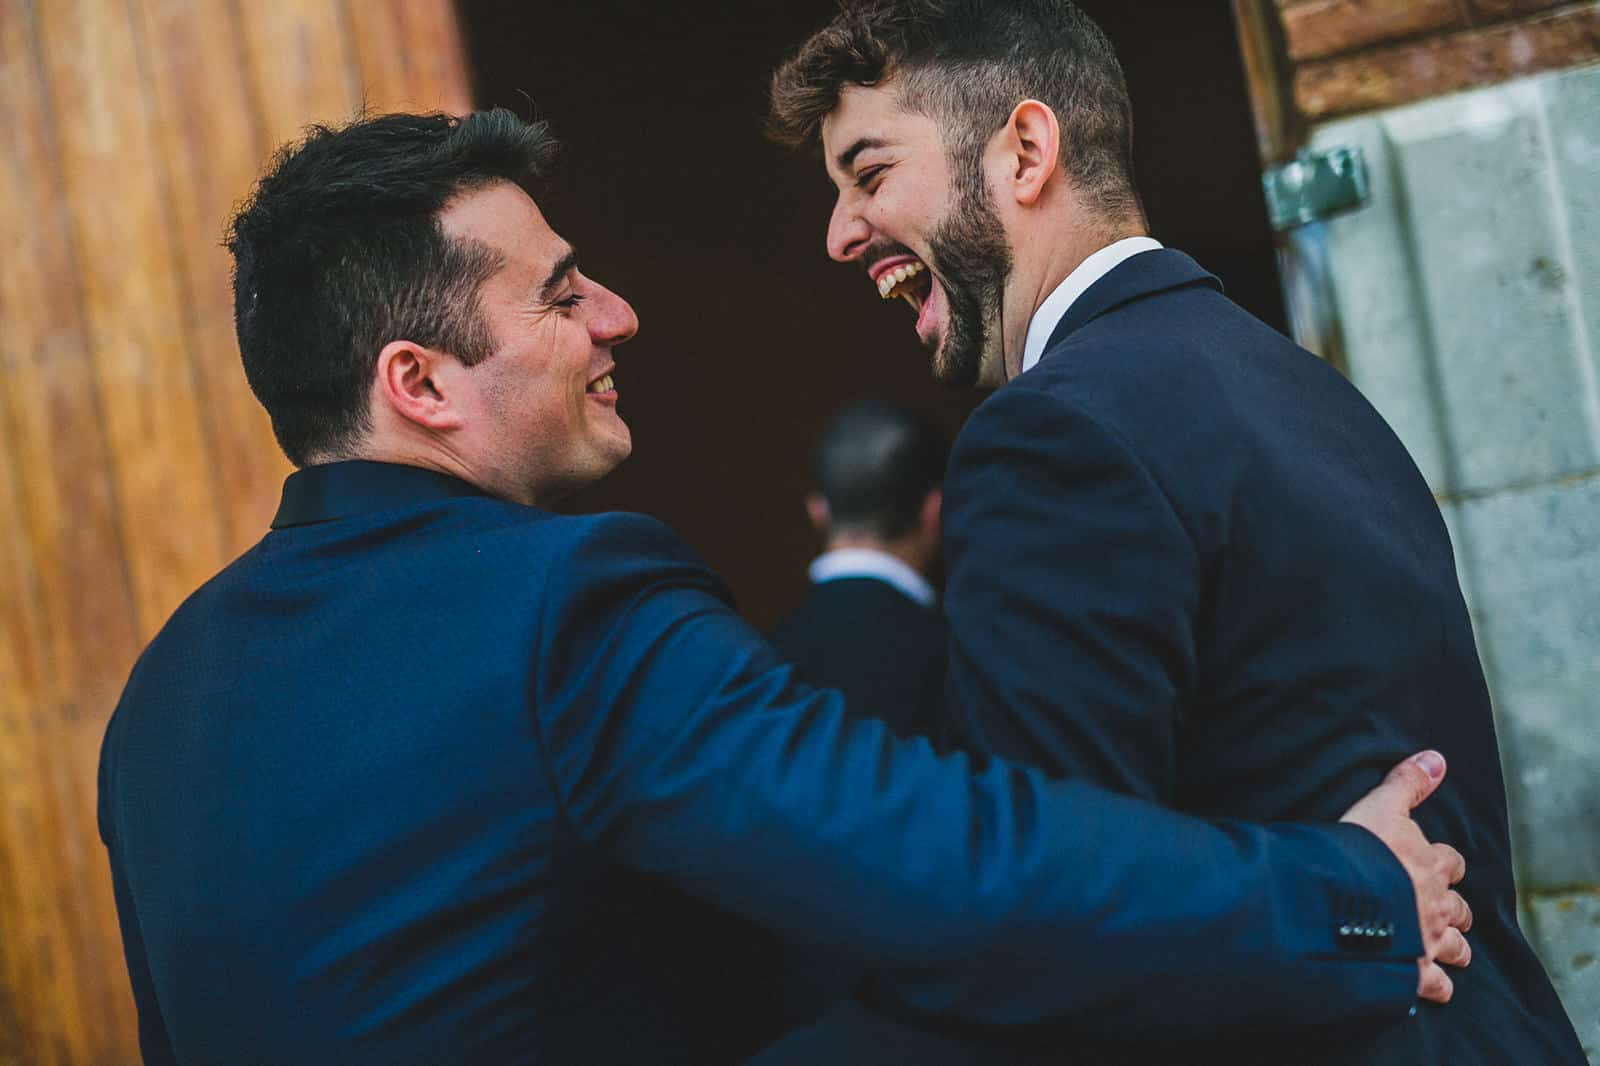 groom laughing saying hi to his friends